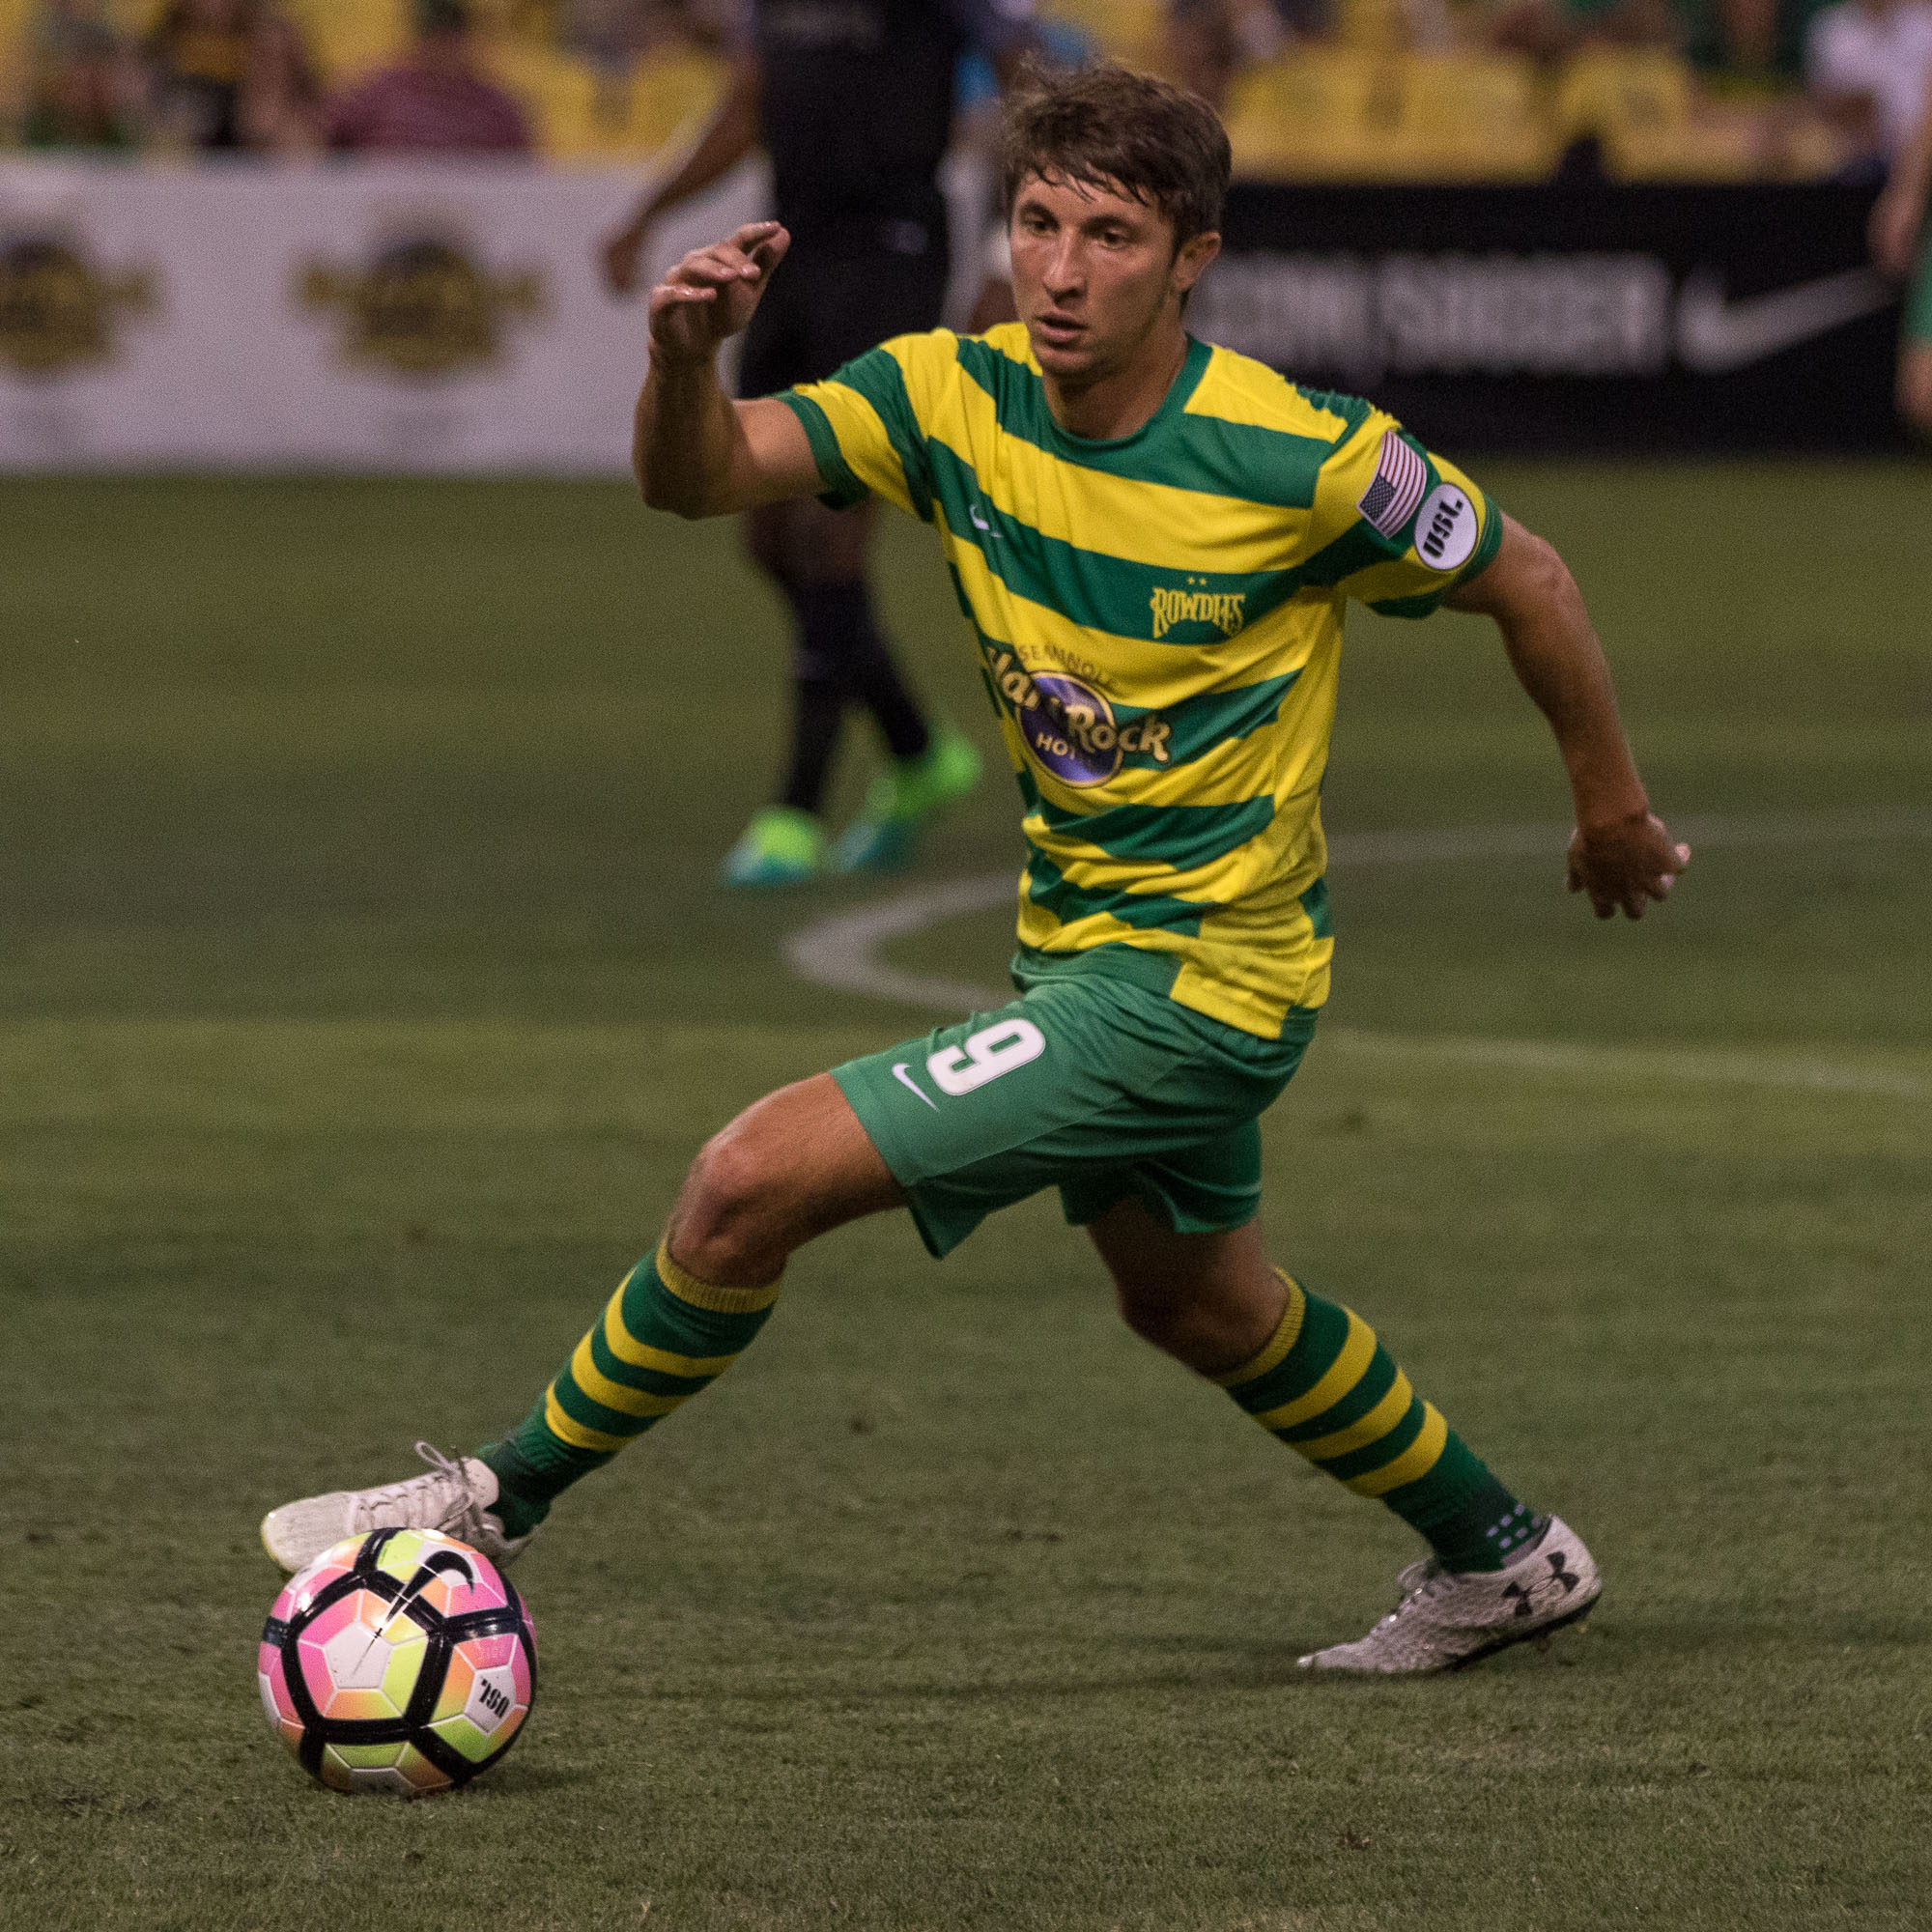 Alex Morrell moves the ball for the Rowdies../STEVEN MUNCIE